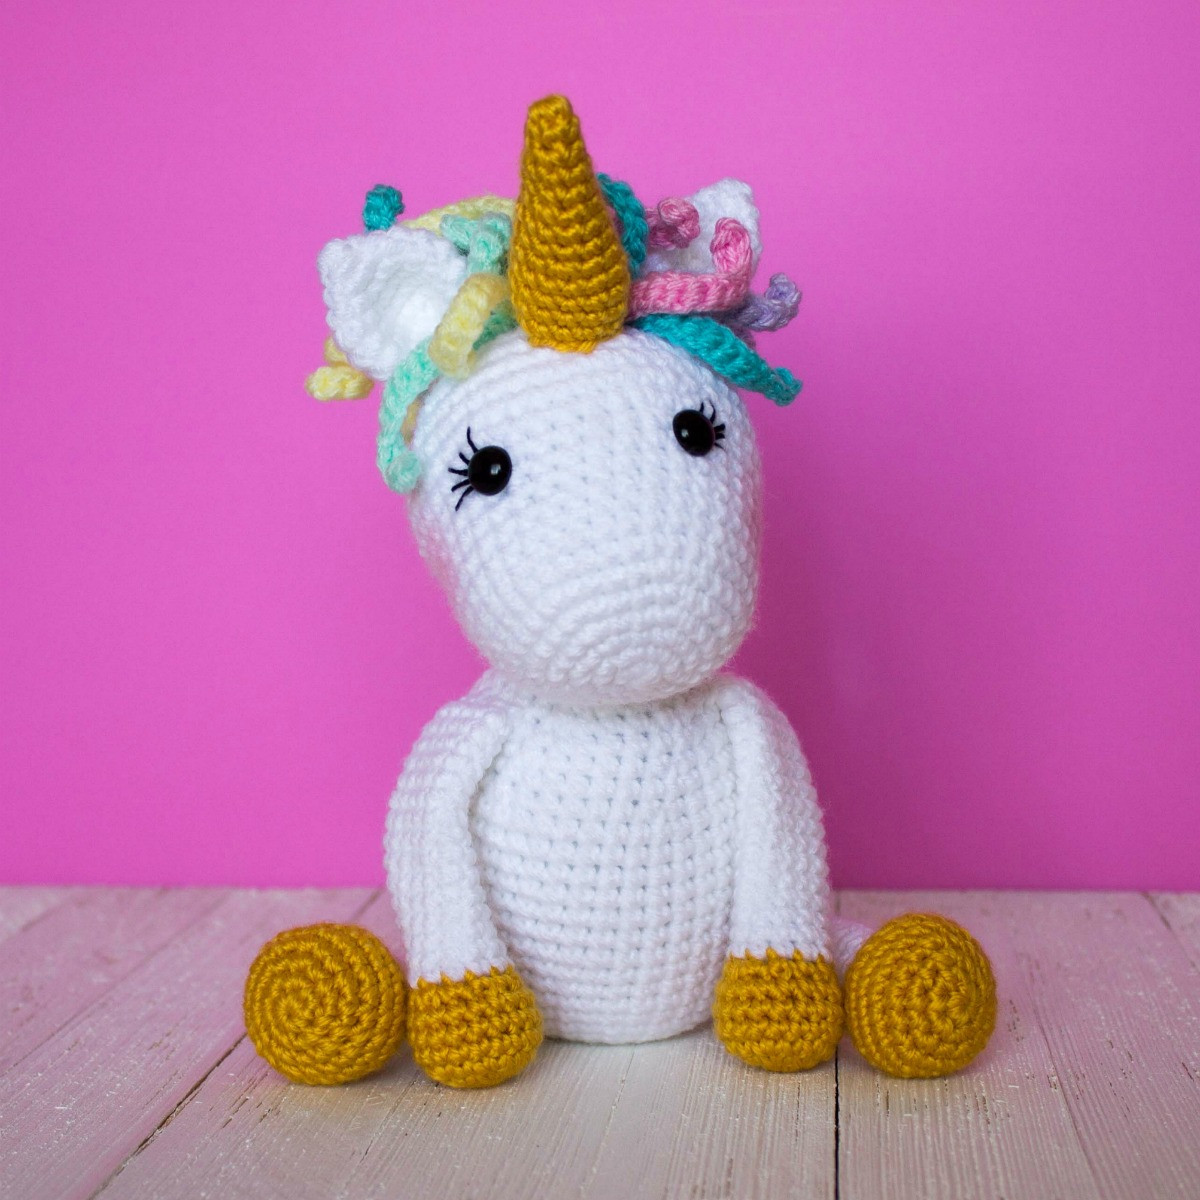 Free Unicorn Crochet Pattern Best Of Free Crochet Unicorn Pattern thefriendlyredfox Of Free Unicorn Crochet Pattern Unique Dada Neon Crochet Tiny Rainbow Unicorn Amigurumi by